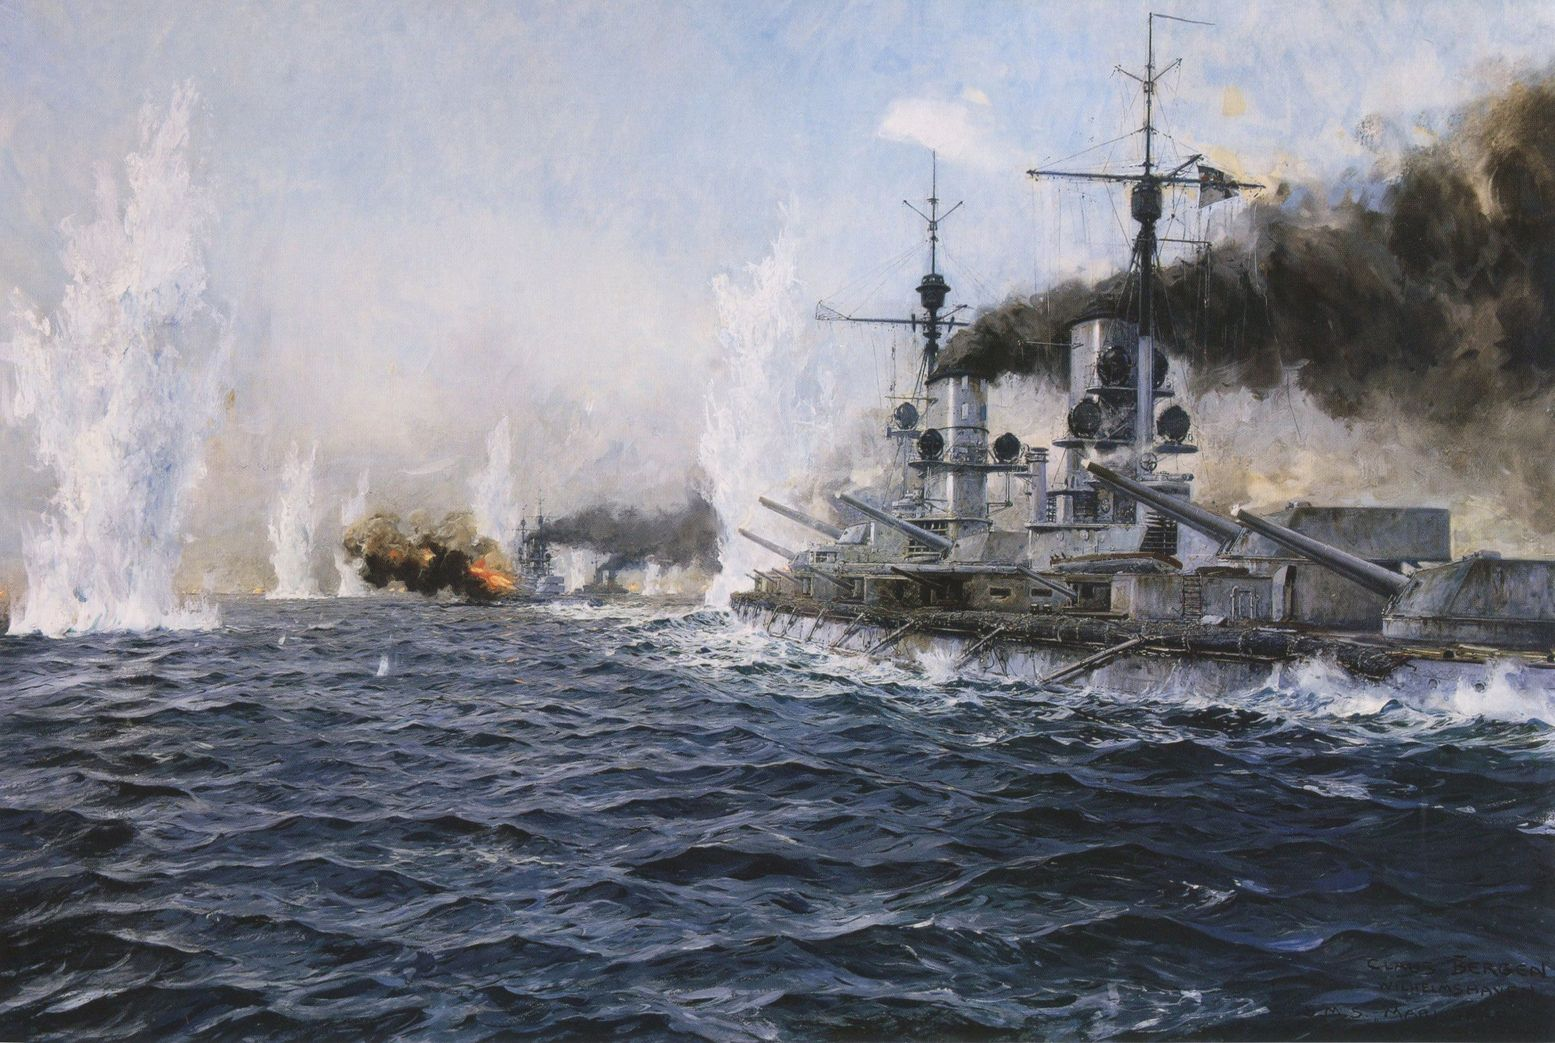 These Are the Deadliest Naval Clashes That Battleships Ever Fought In